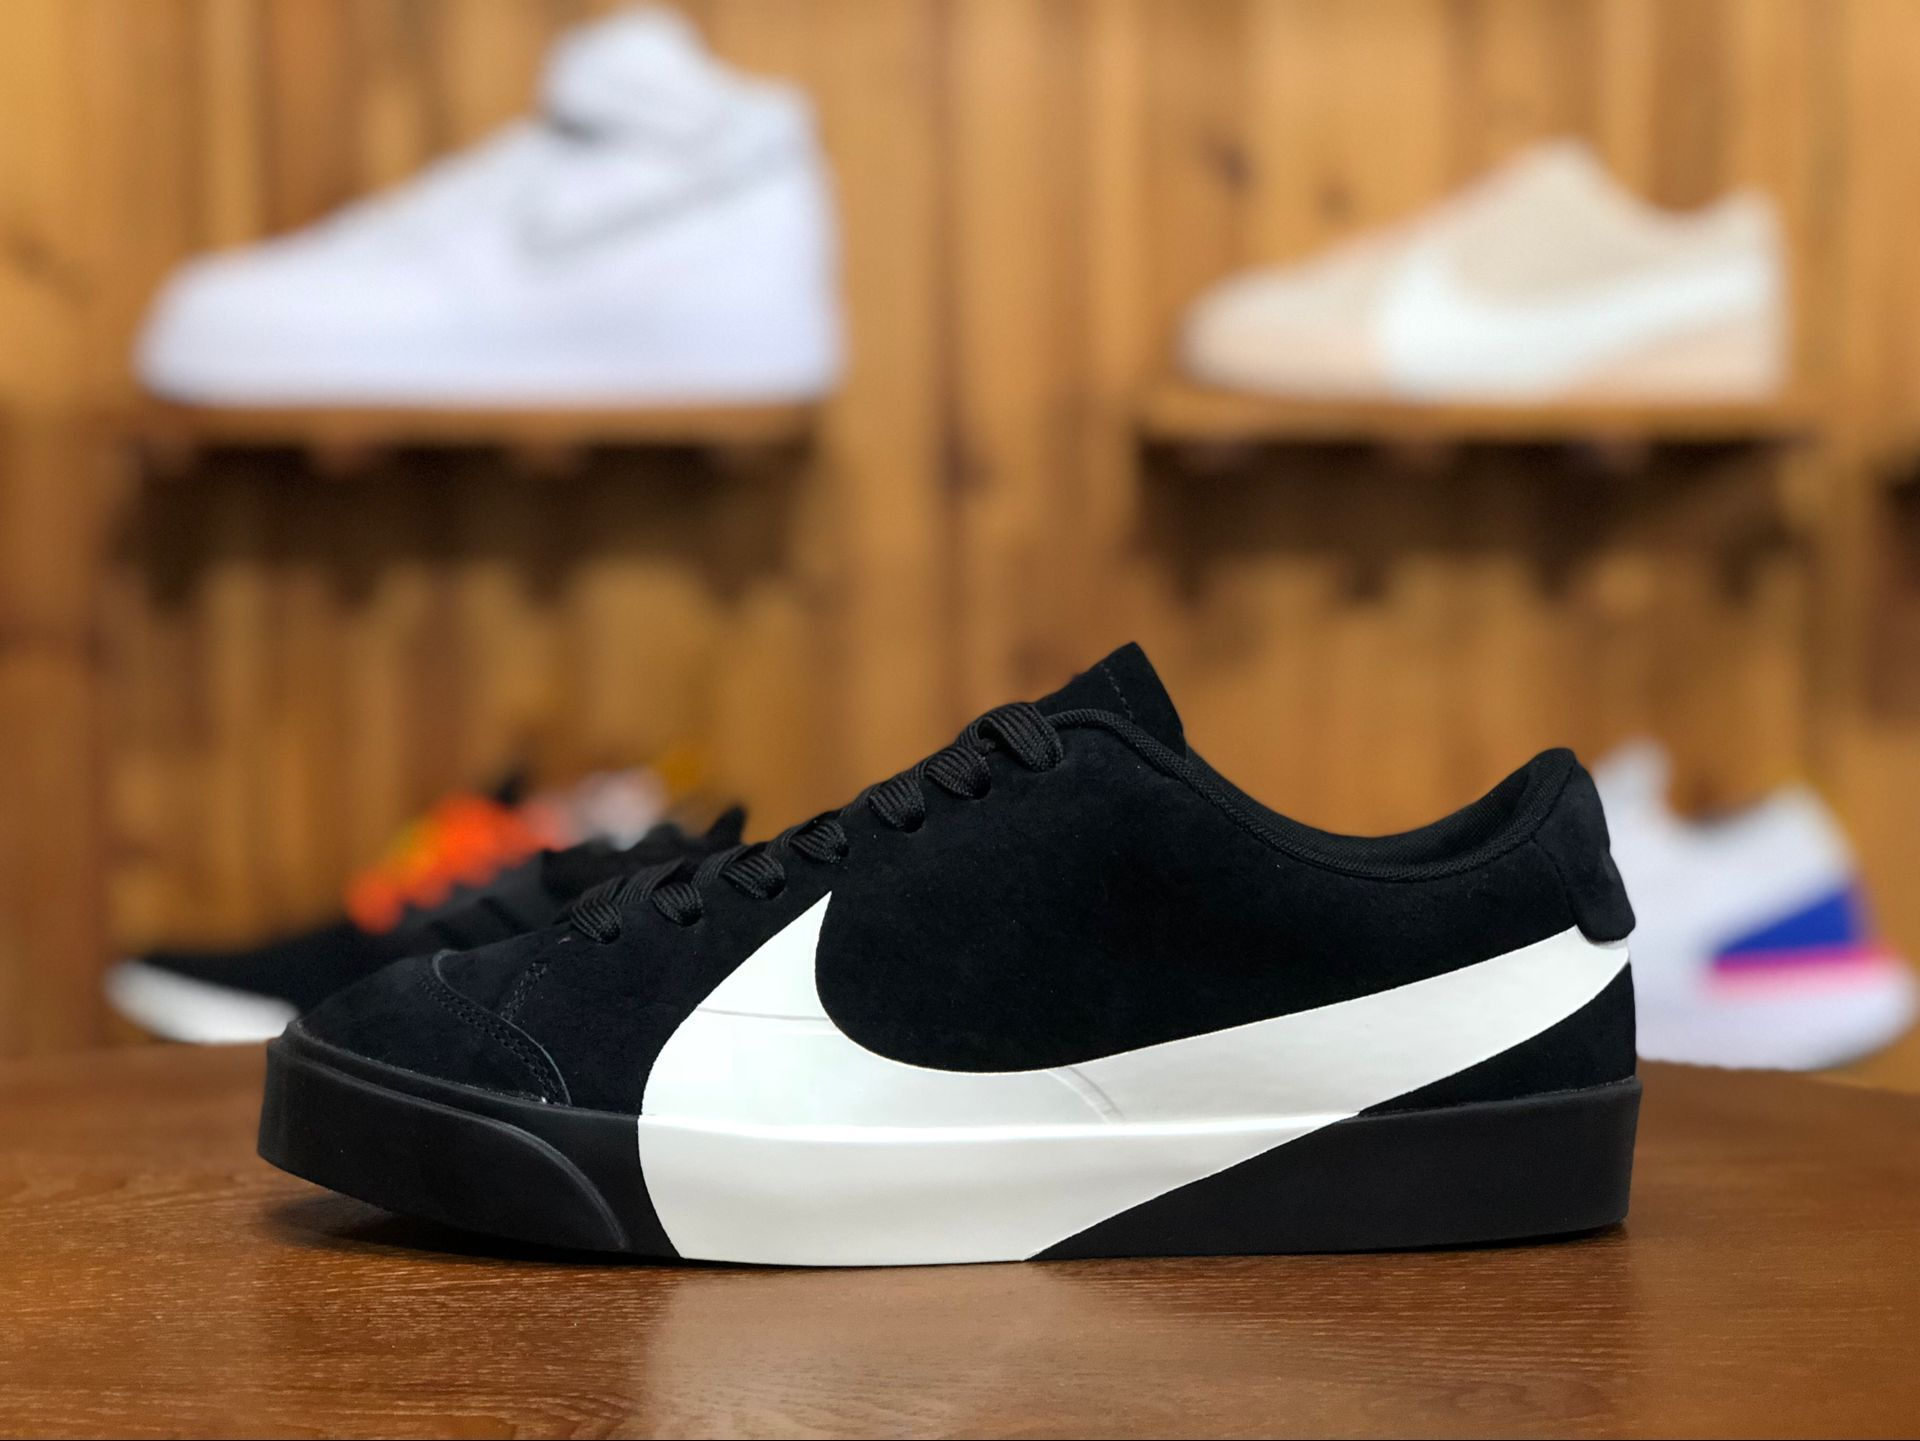 wholesale dealer 46bd8 785c9 This Nike Blazer City Low XS Black White features an ...